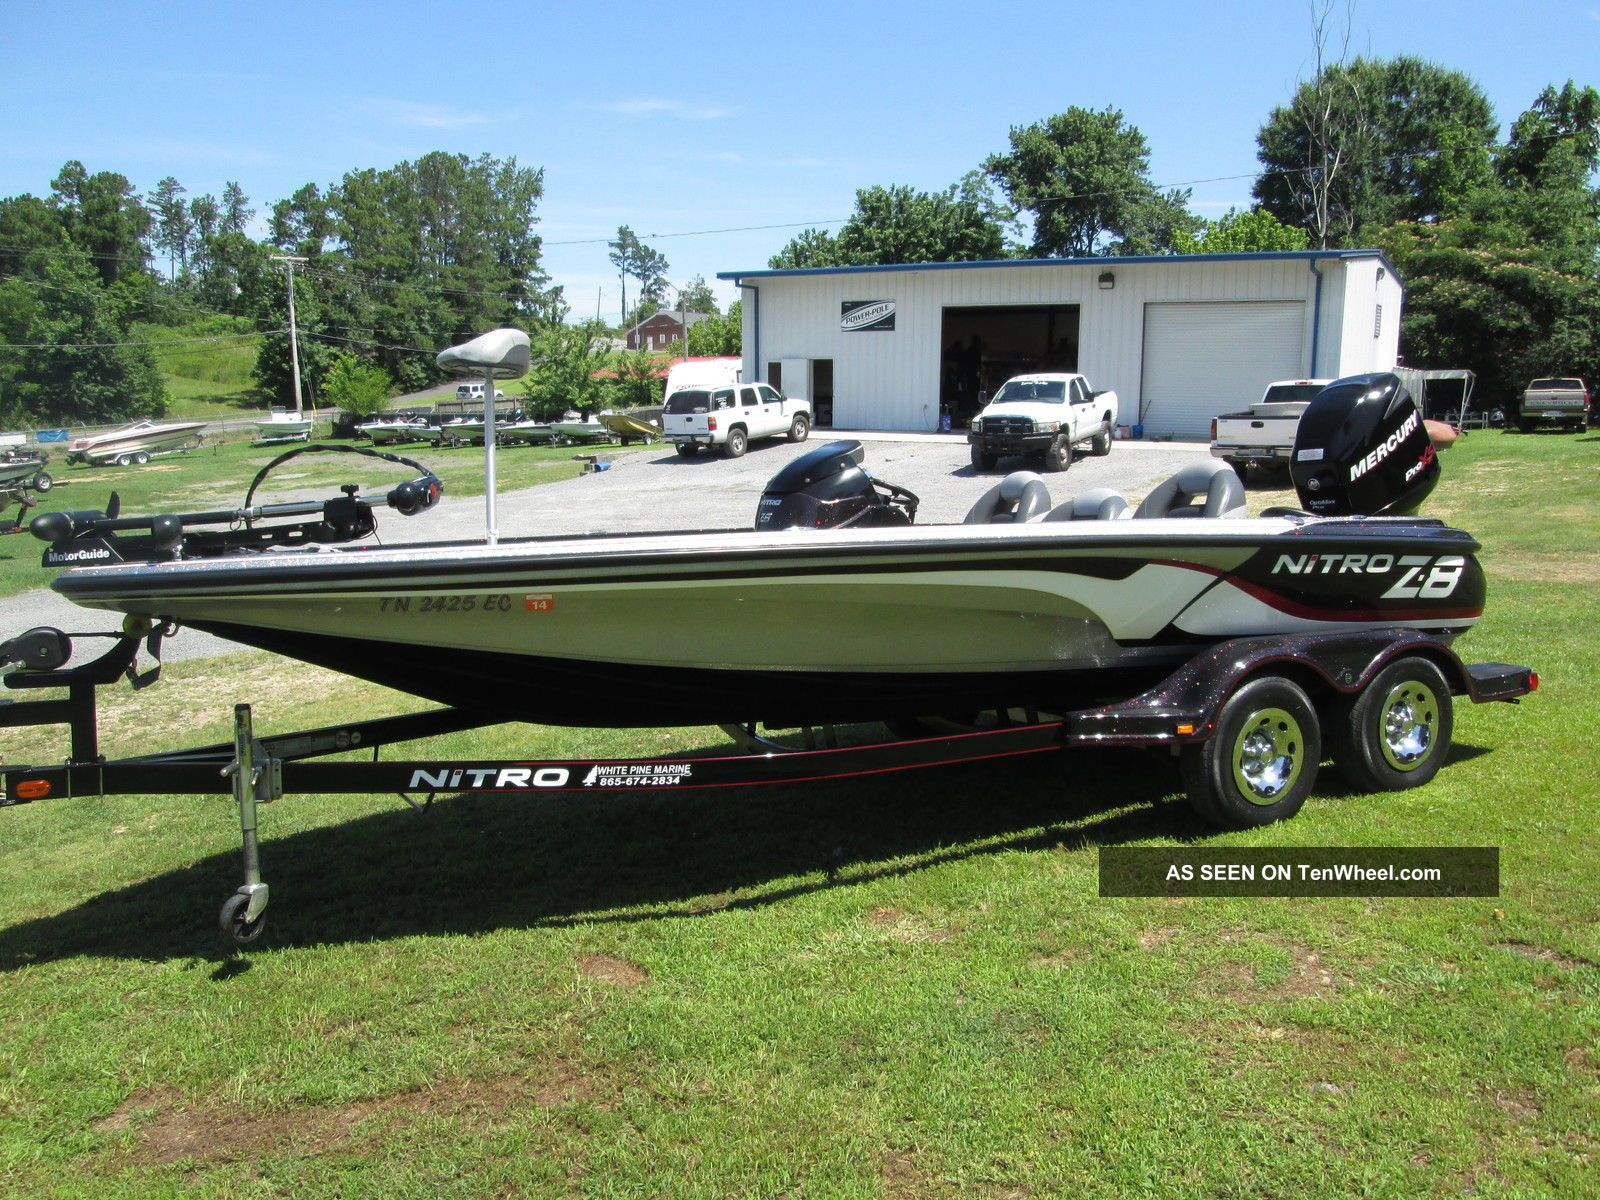 2011 Nitro Z8 Bass Fishing Boats photo